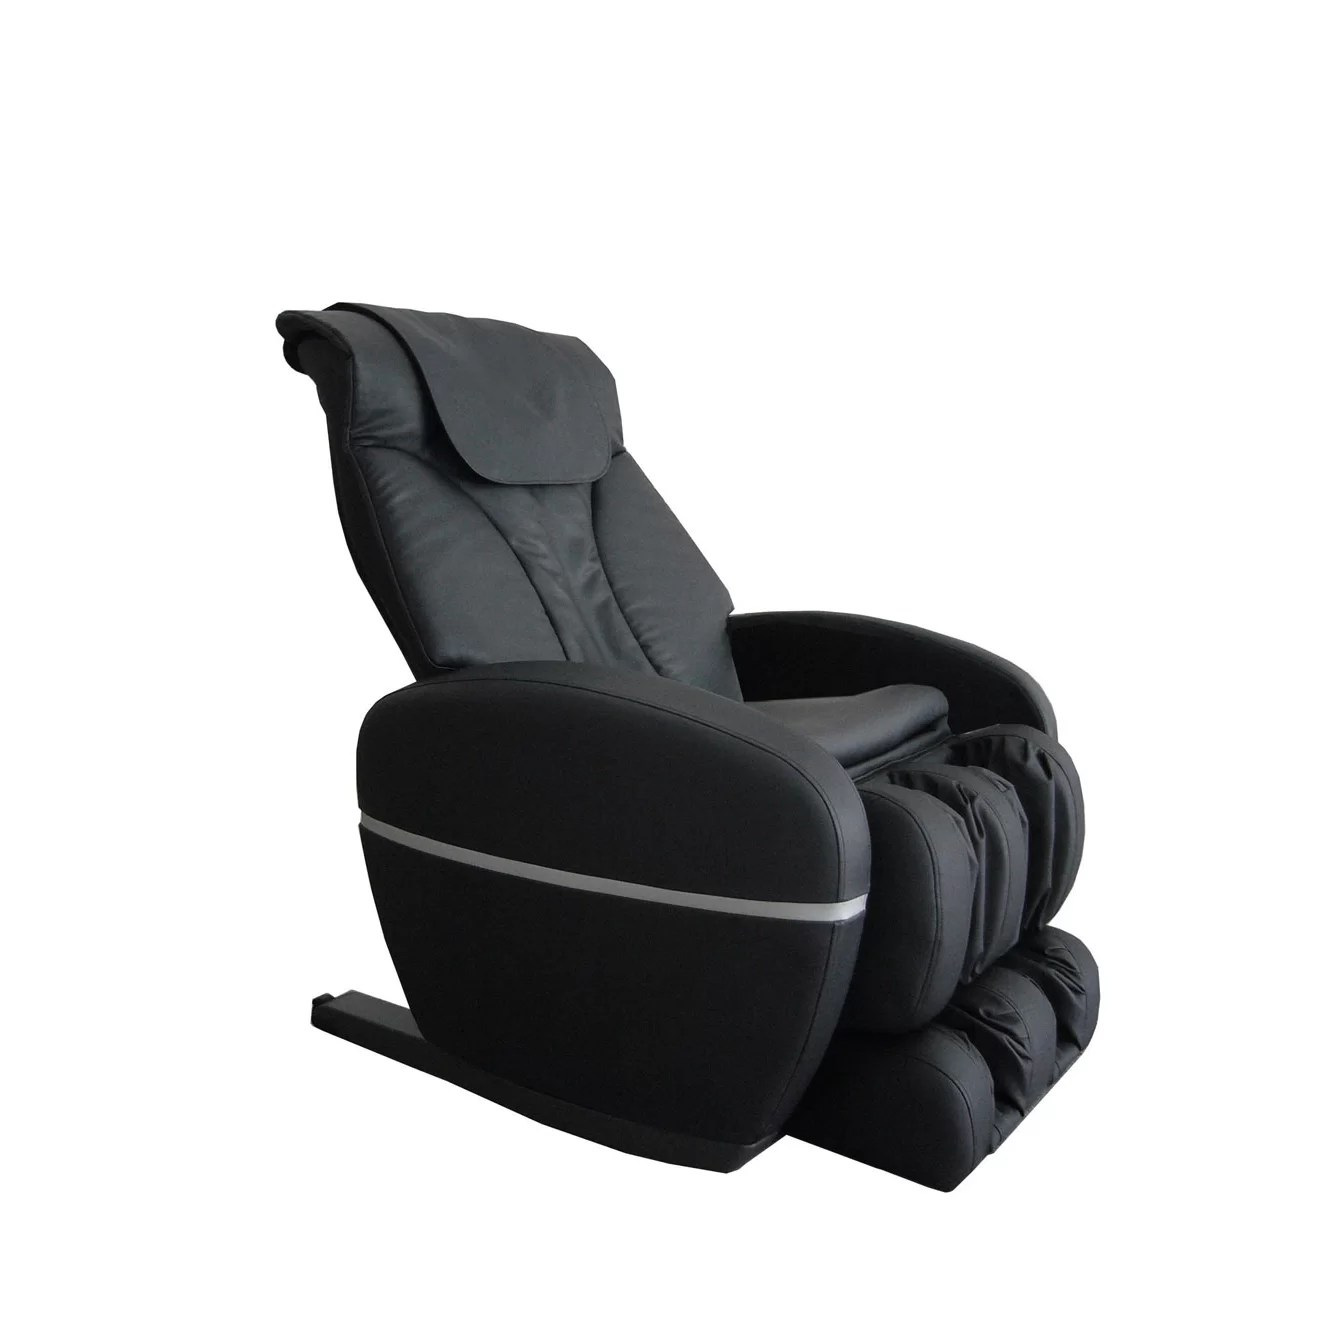 massage zero gravity chair batman camping masse la escape reclining wayfair